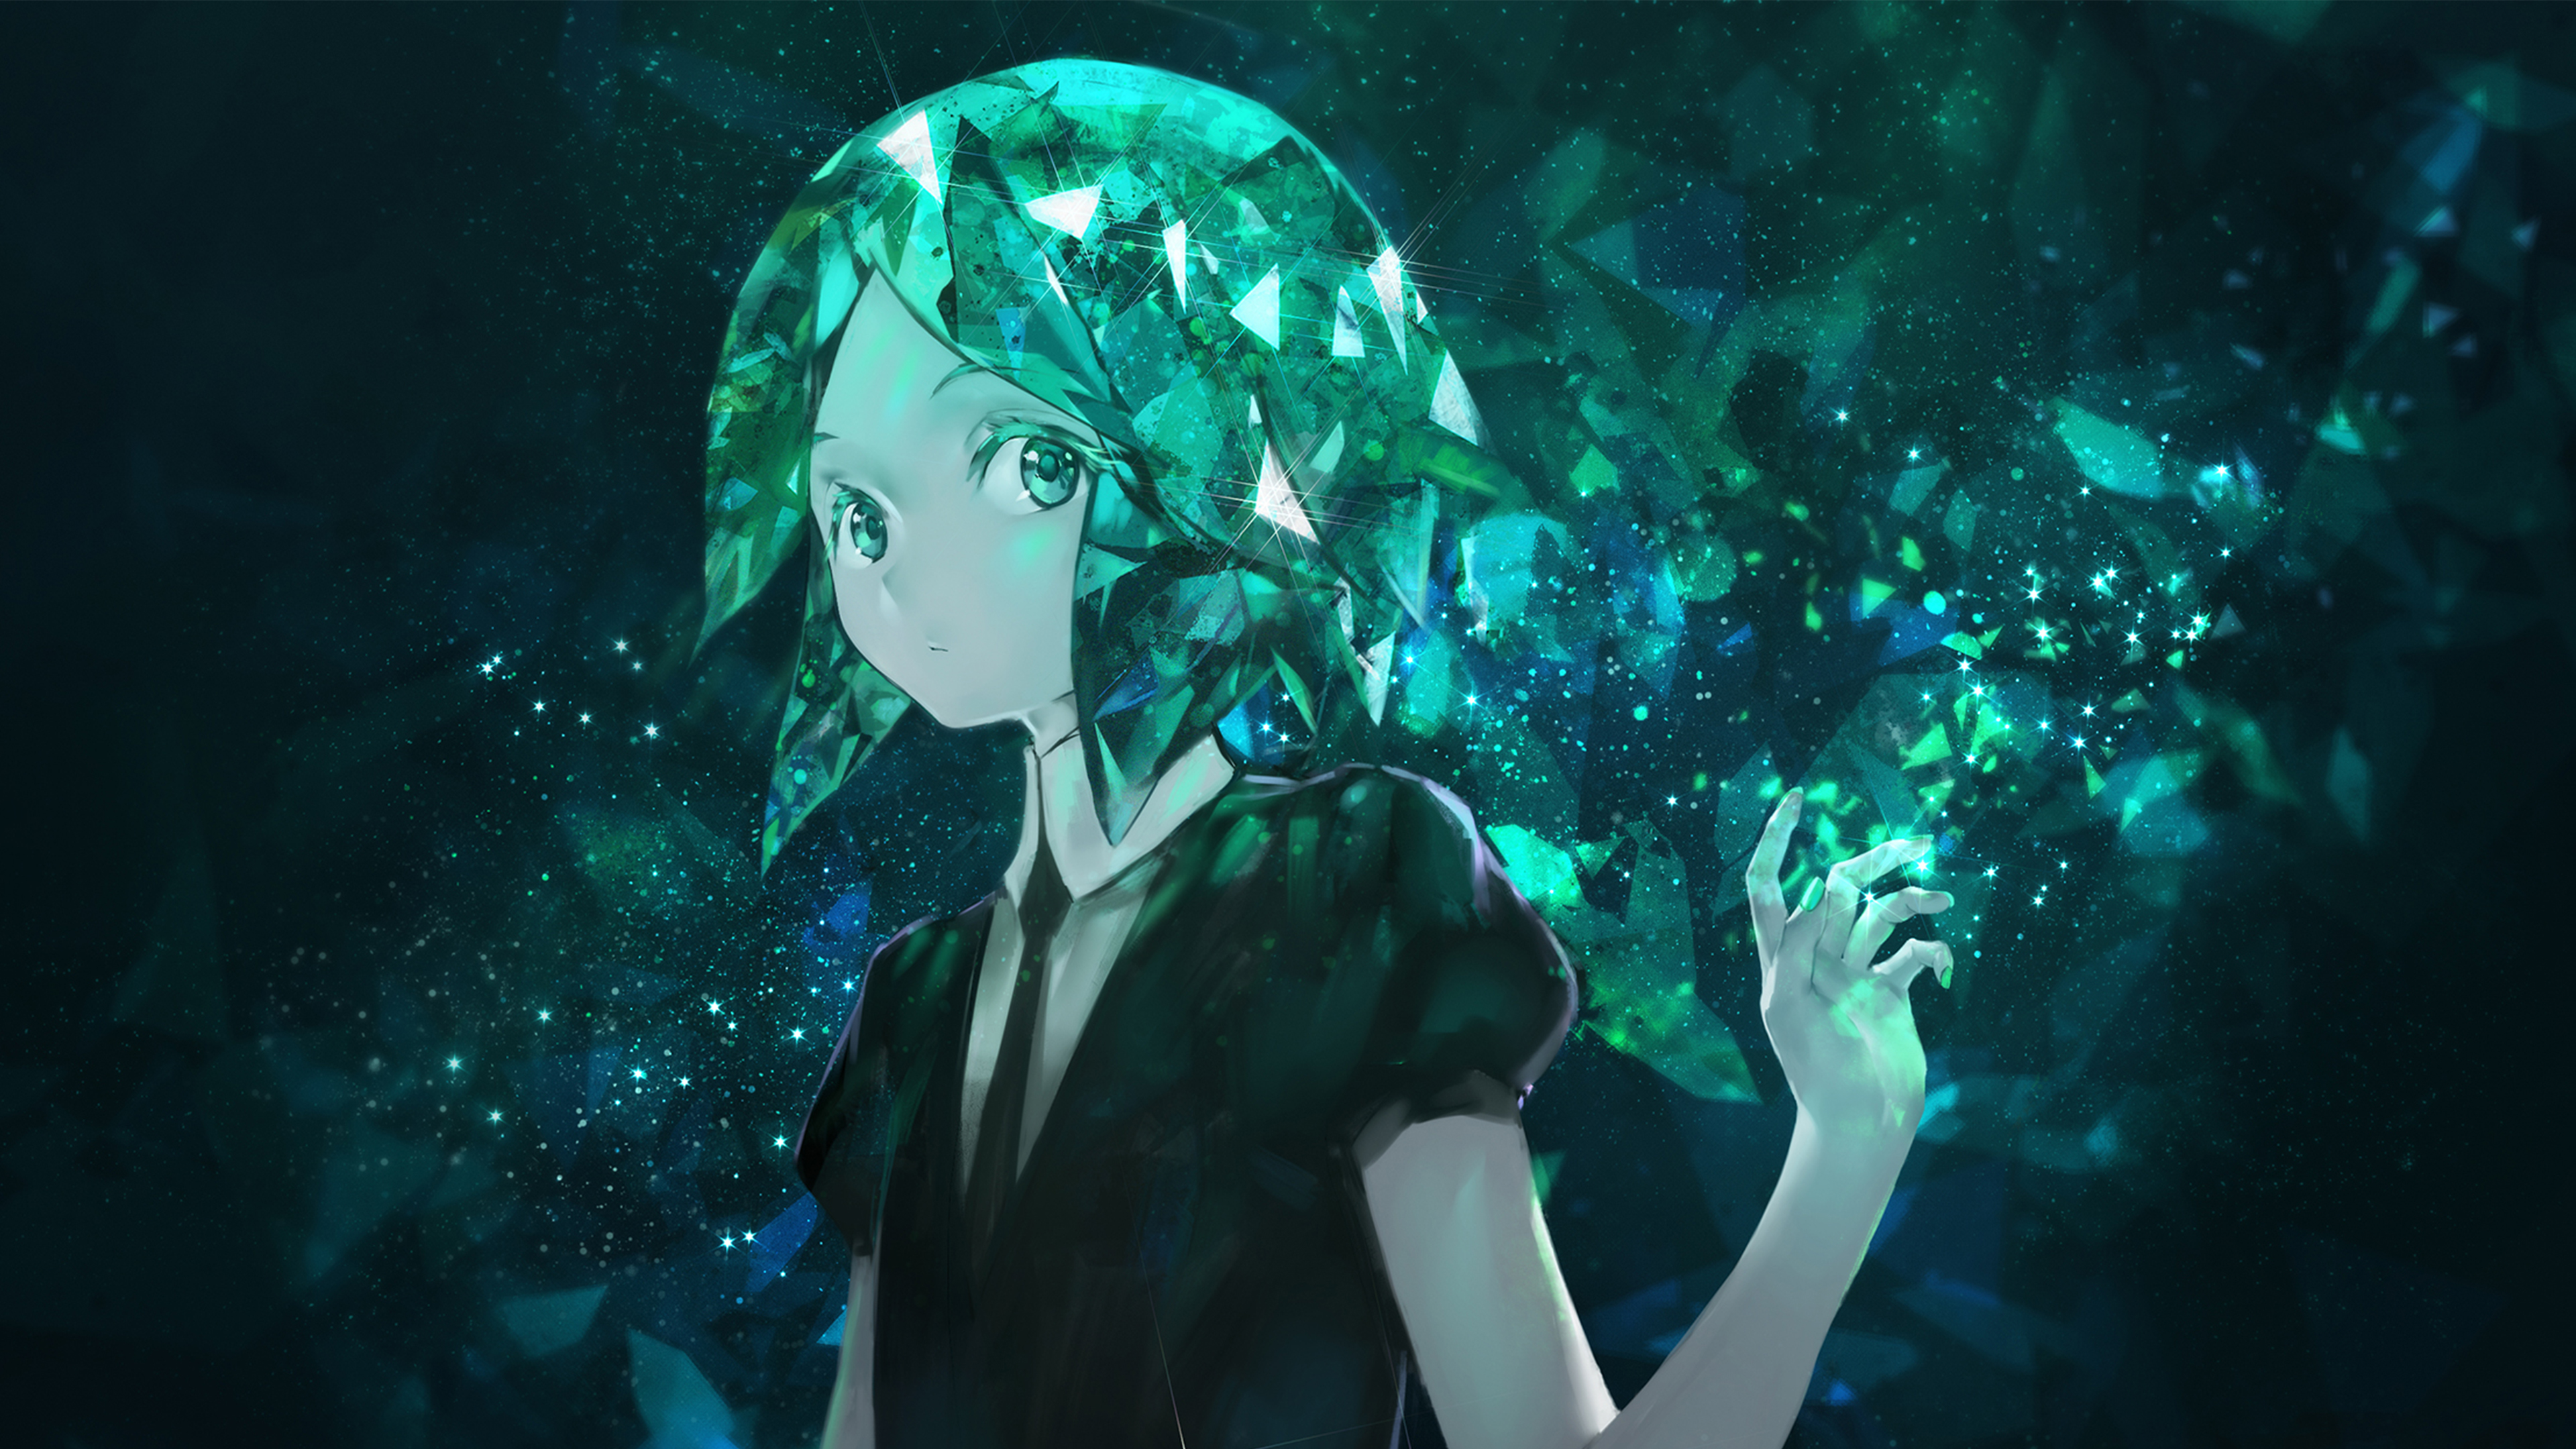 iPhosphophyllite